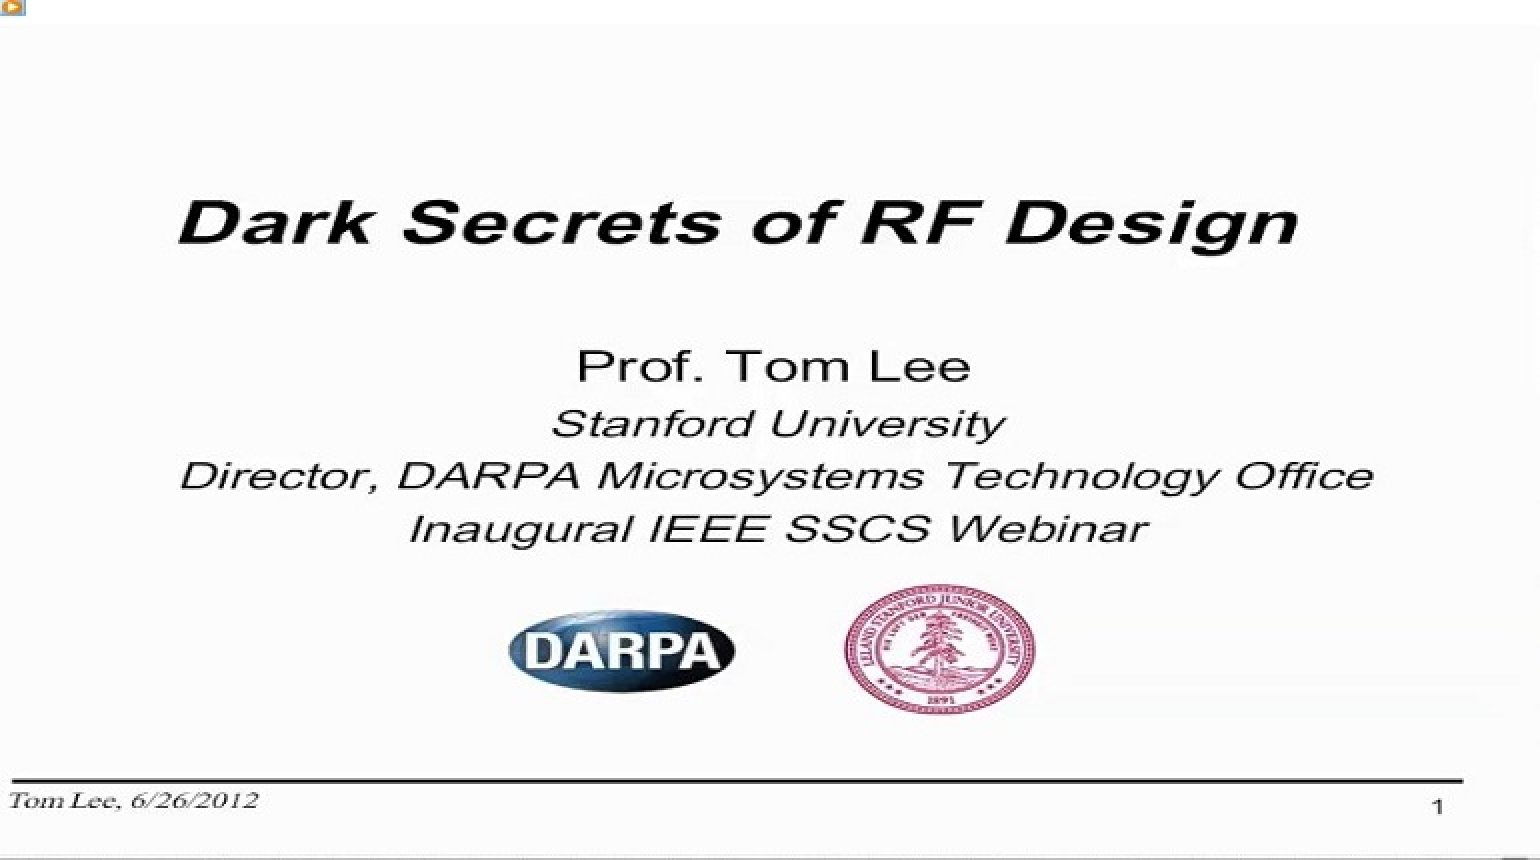 Dark Secrets of RF Design Video